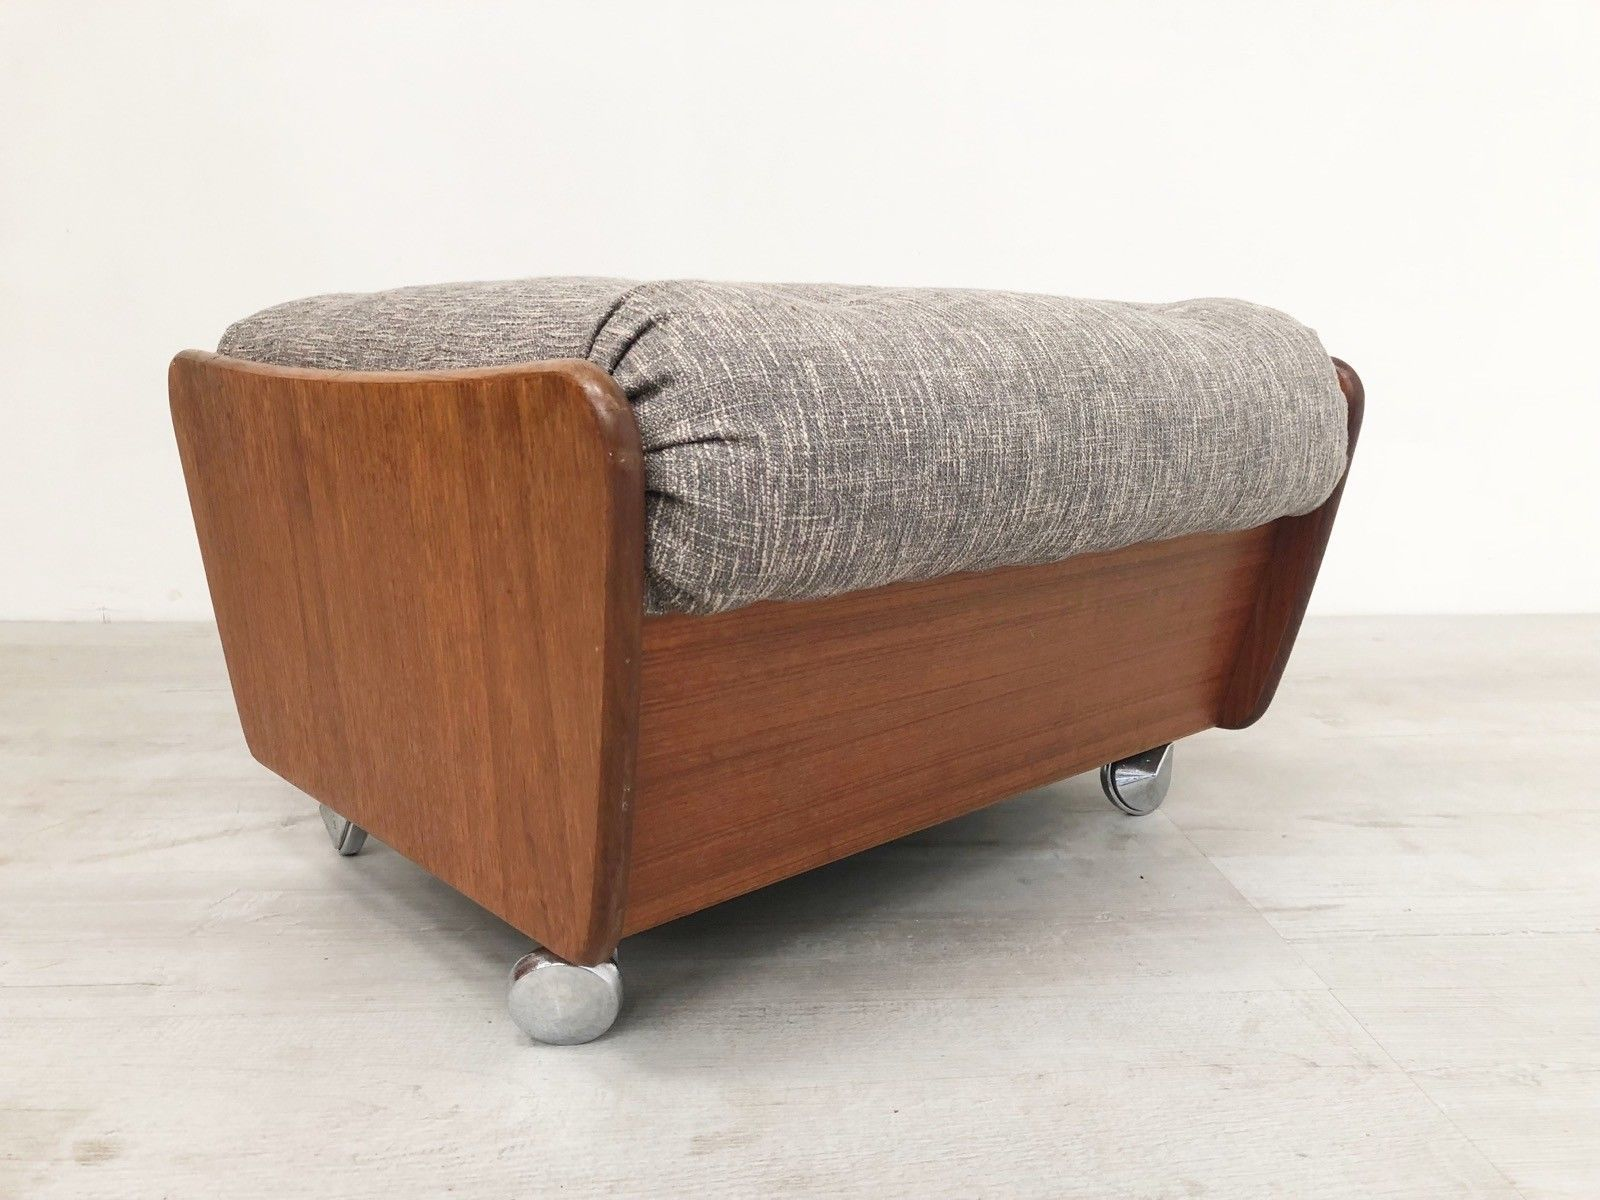 details-about-g-plan-vintage-saddleback-teak-70-s-mid-century-ottoman-footstool-re-upholstered